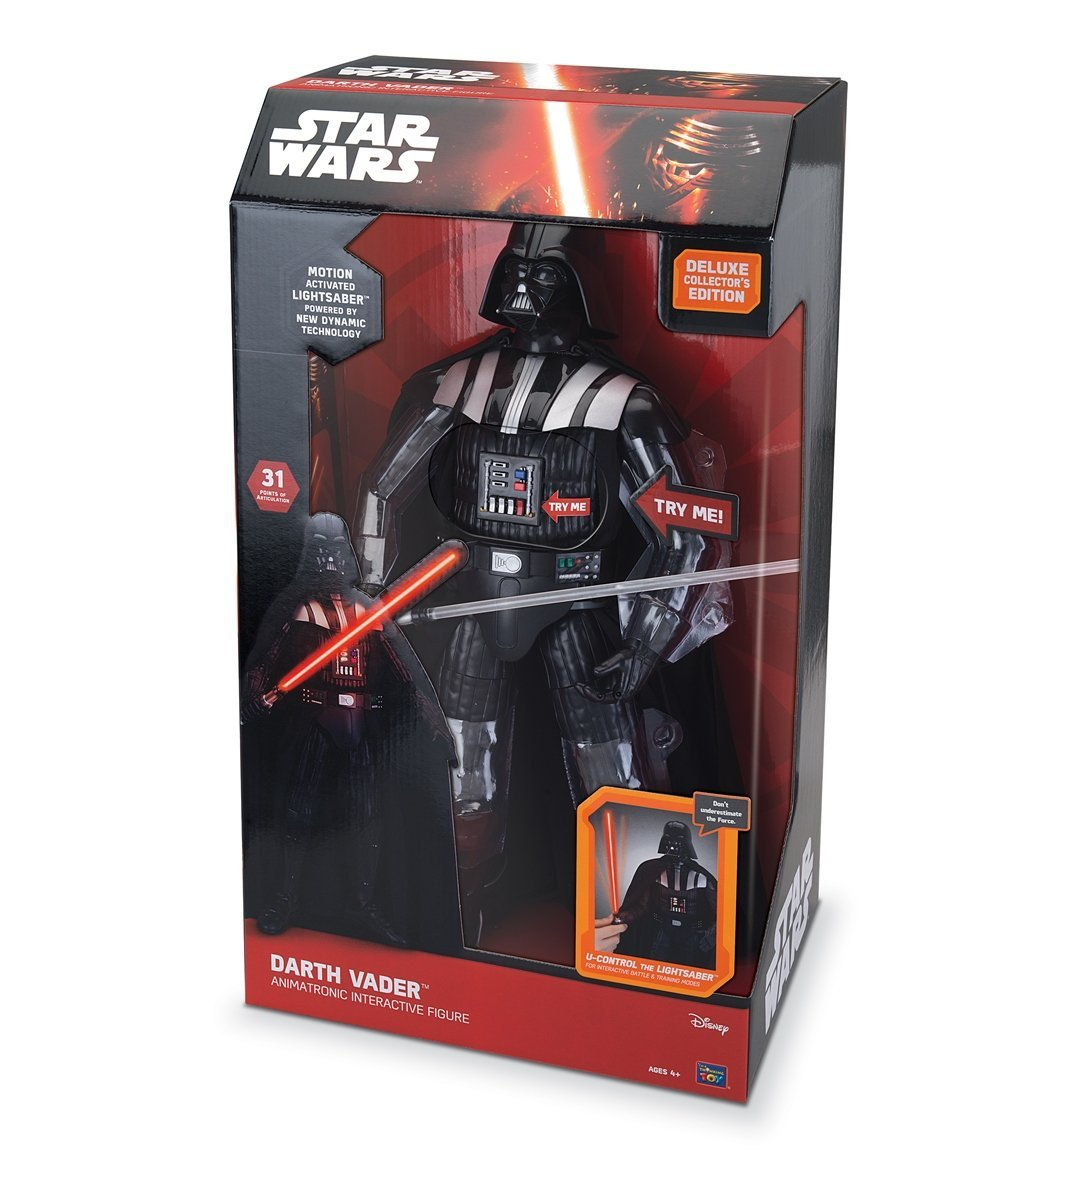 Star Wars: Episode VII The Force Awakens - Darth VaderTM Animatronic Interactive Figure